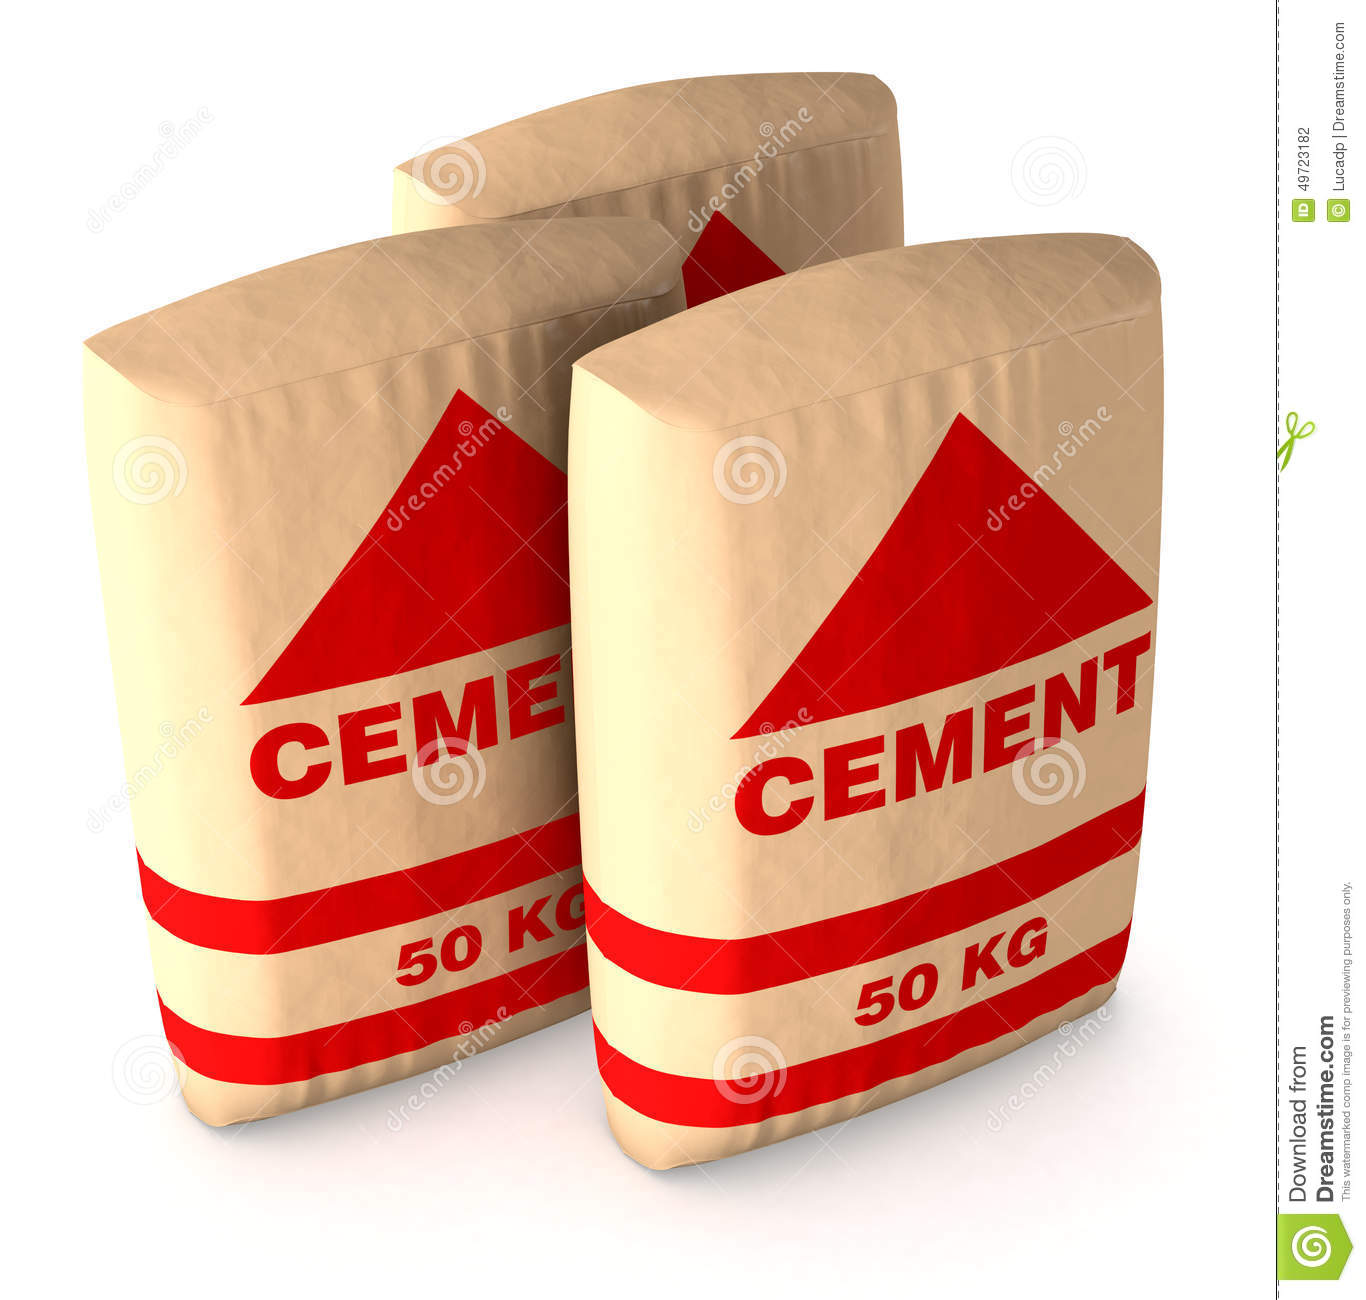 bags of cement stock illustration image of illustration